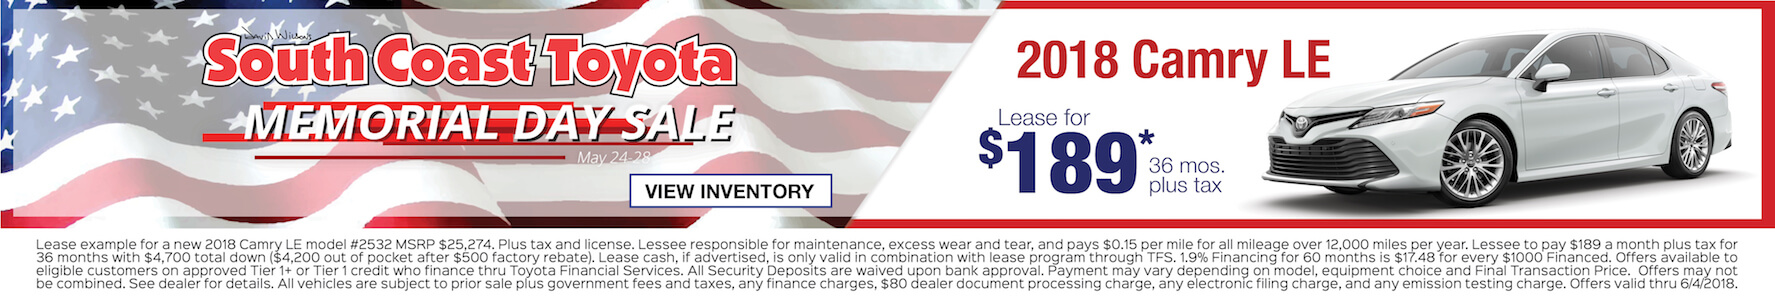 Memorial Day Toyota Camry $189 Lease